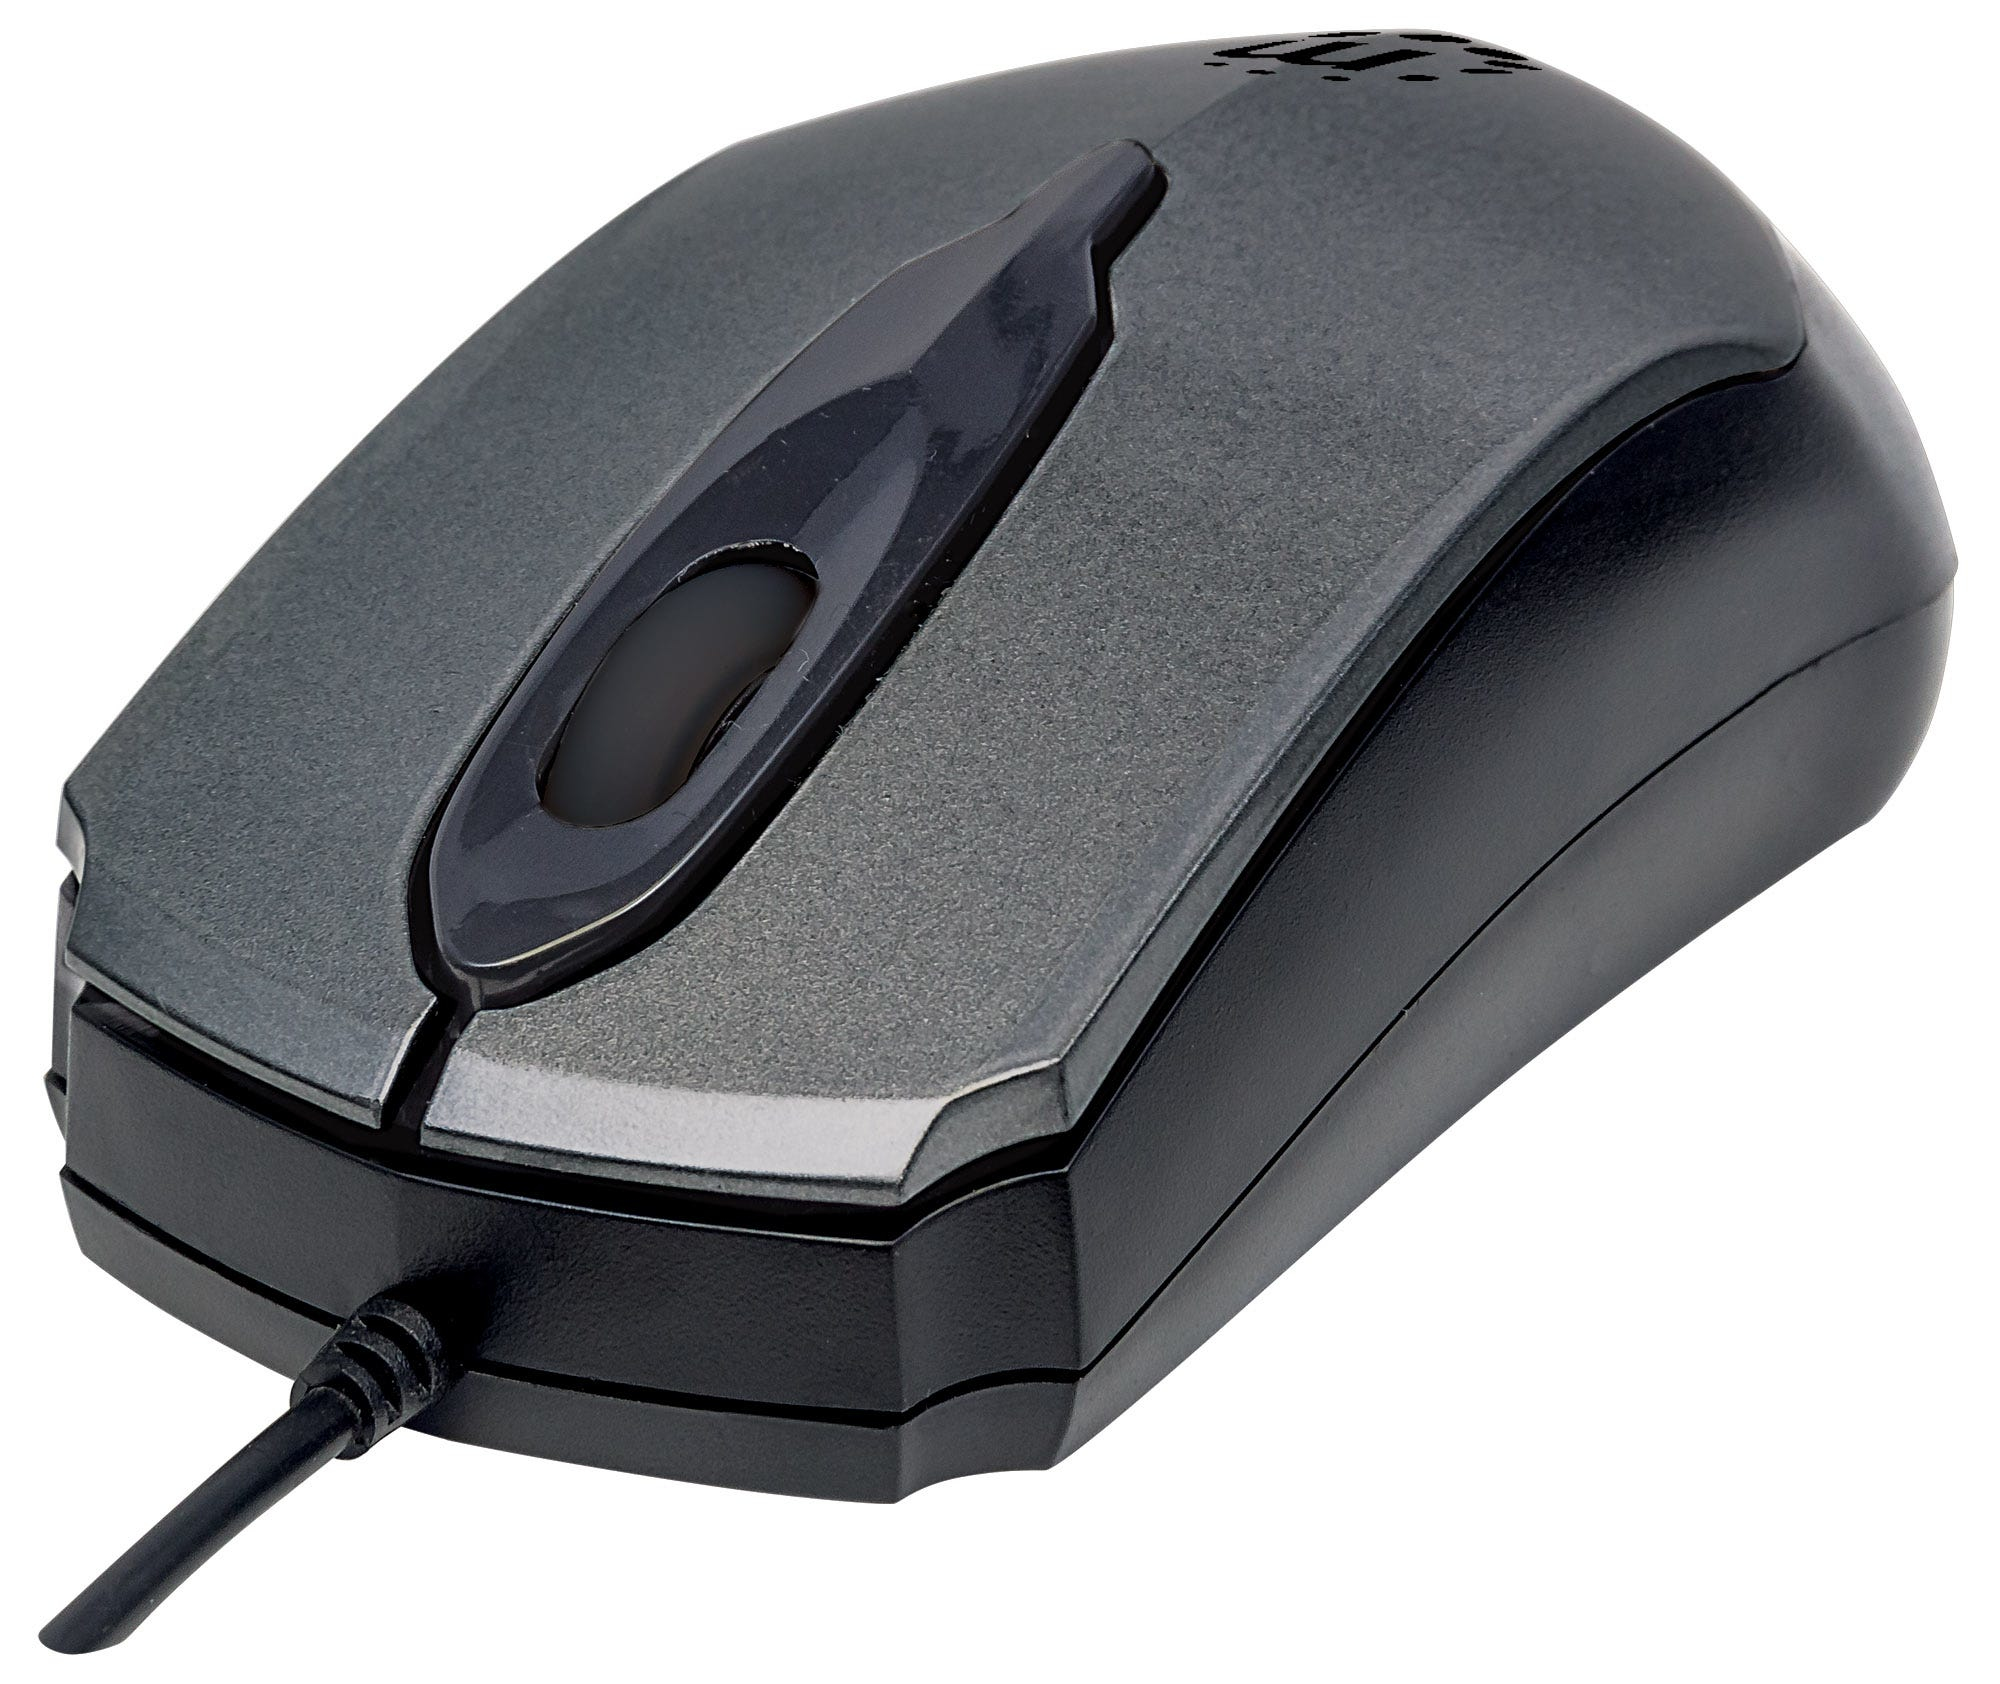 Manhattan Edge USB Wired Mouse, Grey, 1000dpi, USB-A, Optical, Compact, Three Button with Scroll Wheel, Low friction base, Blister